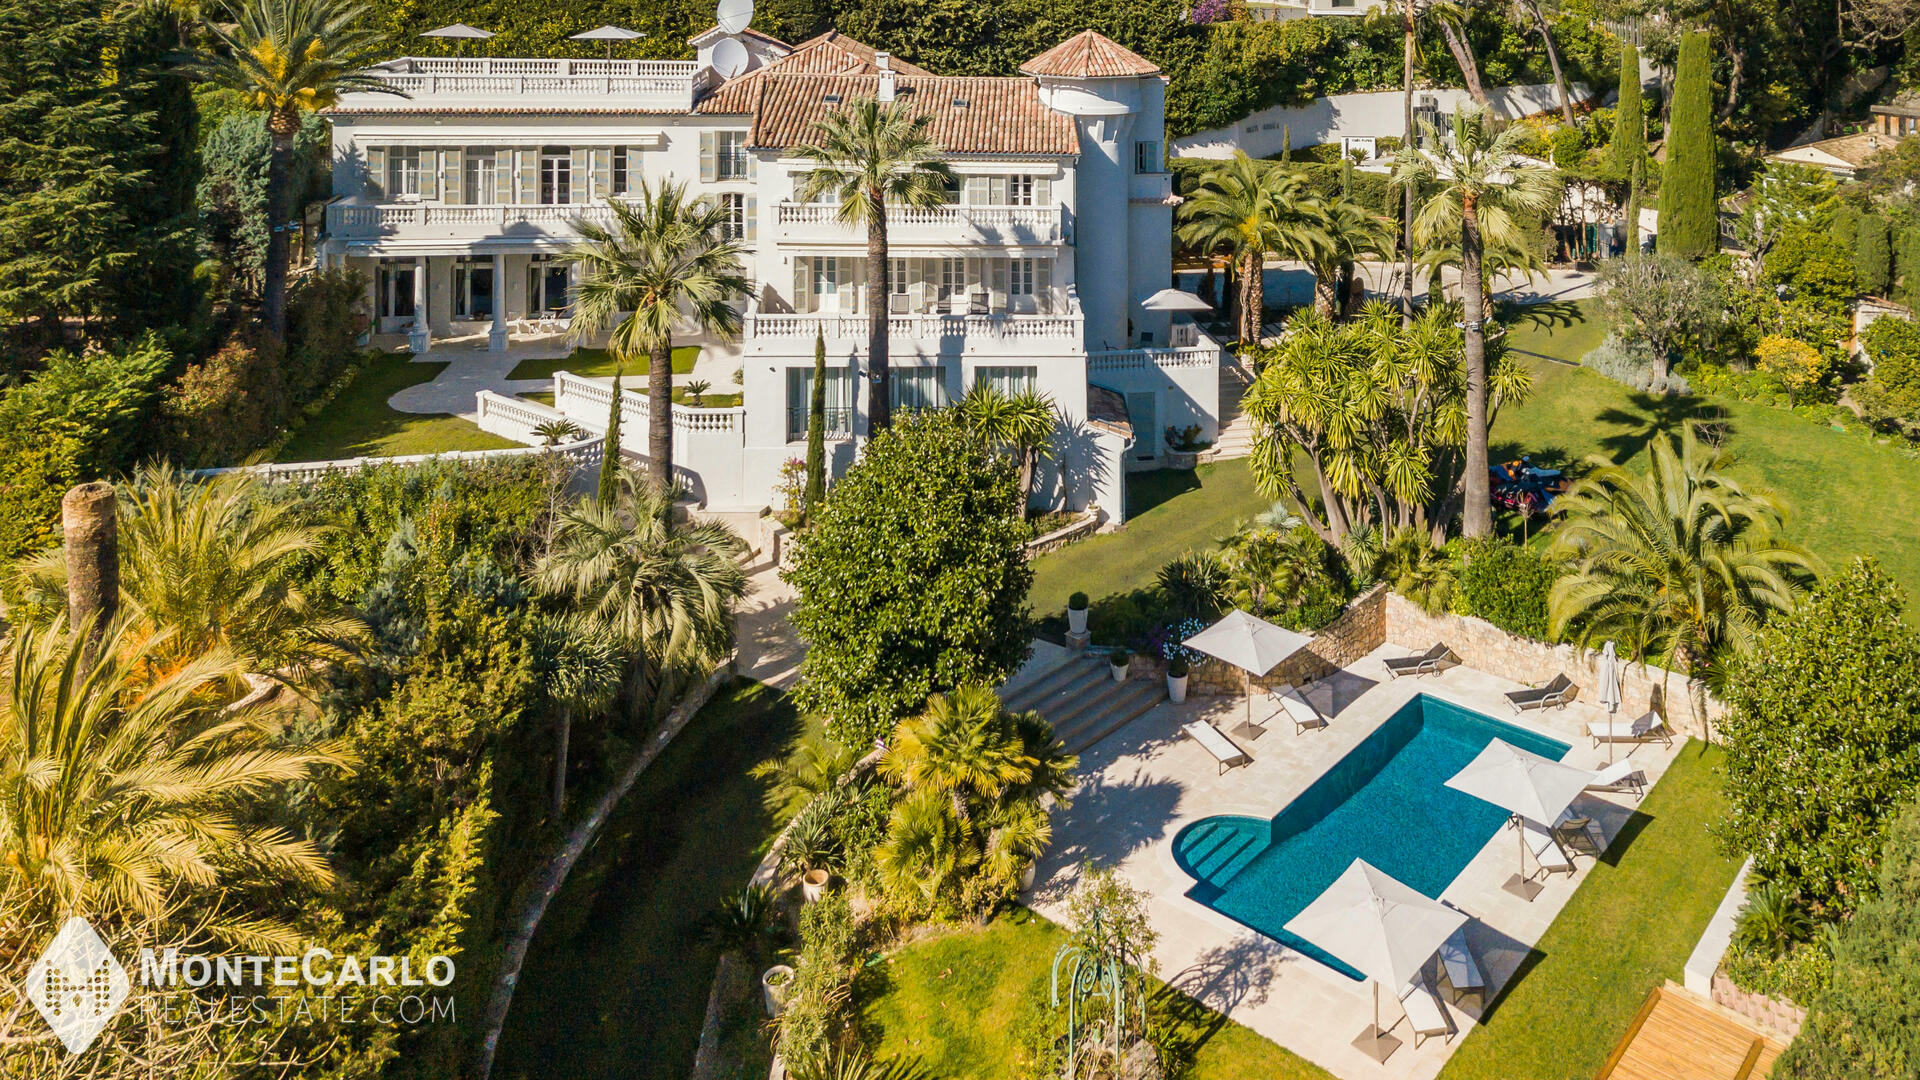 Rental Cannes - Château / +5 rooms : 200 000 €   Monte-Carlo Real Estate [LSF0320-12]